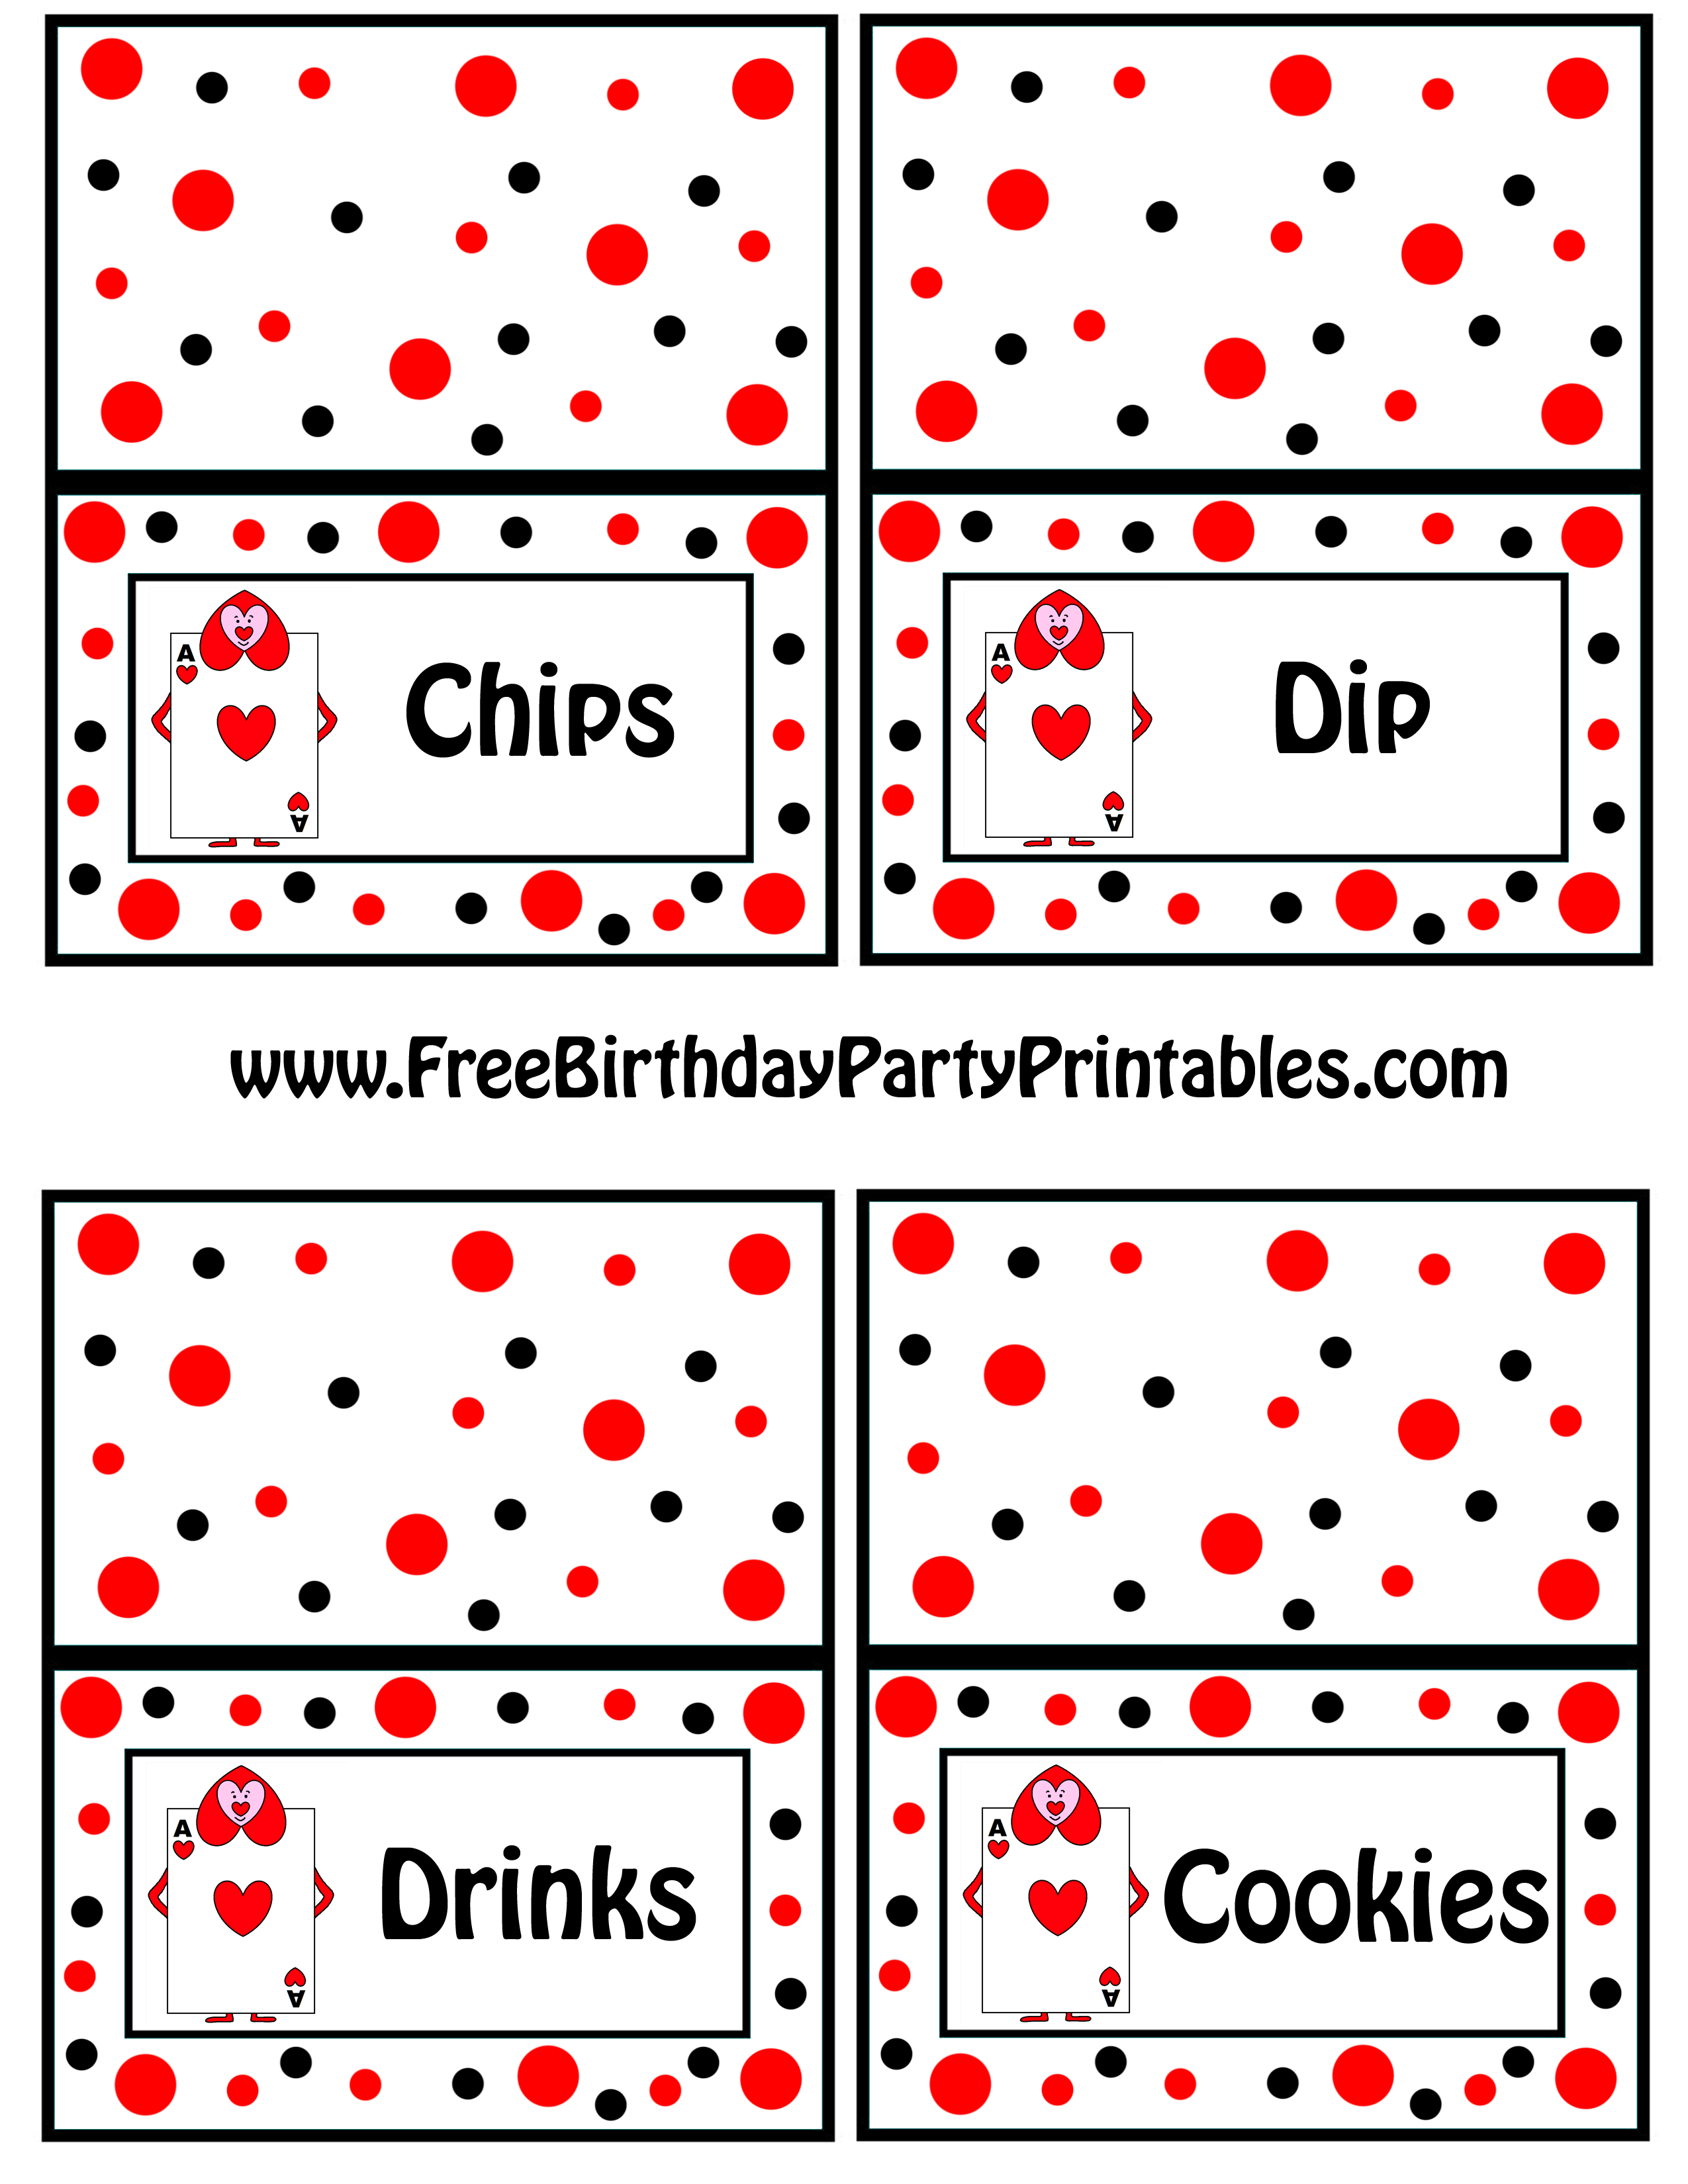 Alice In Wonderland Card Soldiers Printable Cutout With Free Printable Playing Cards Template